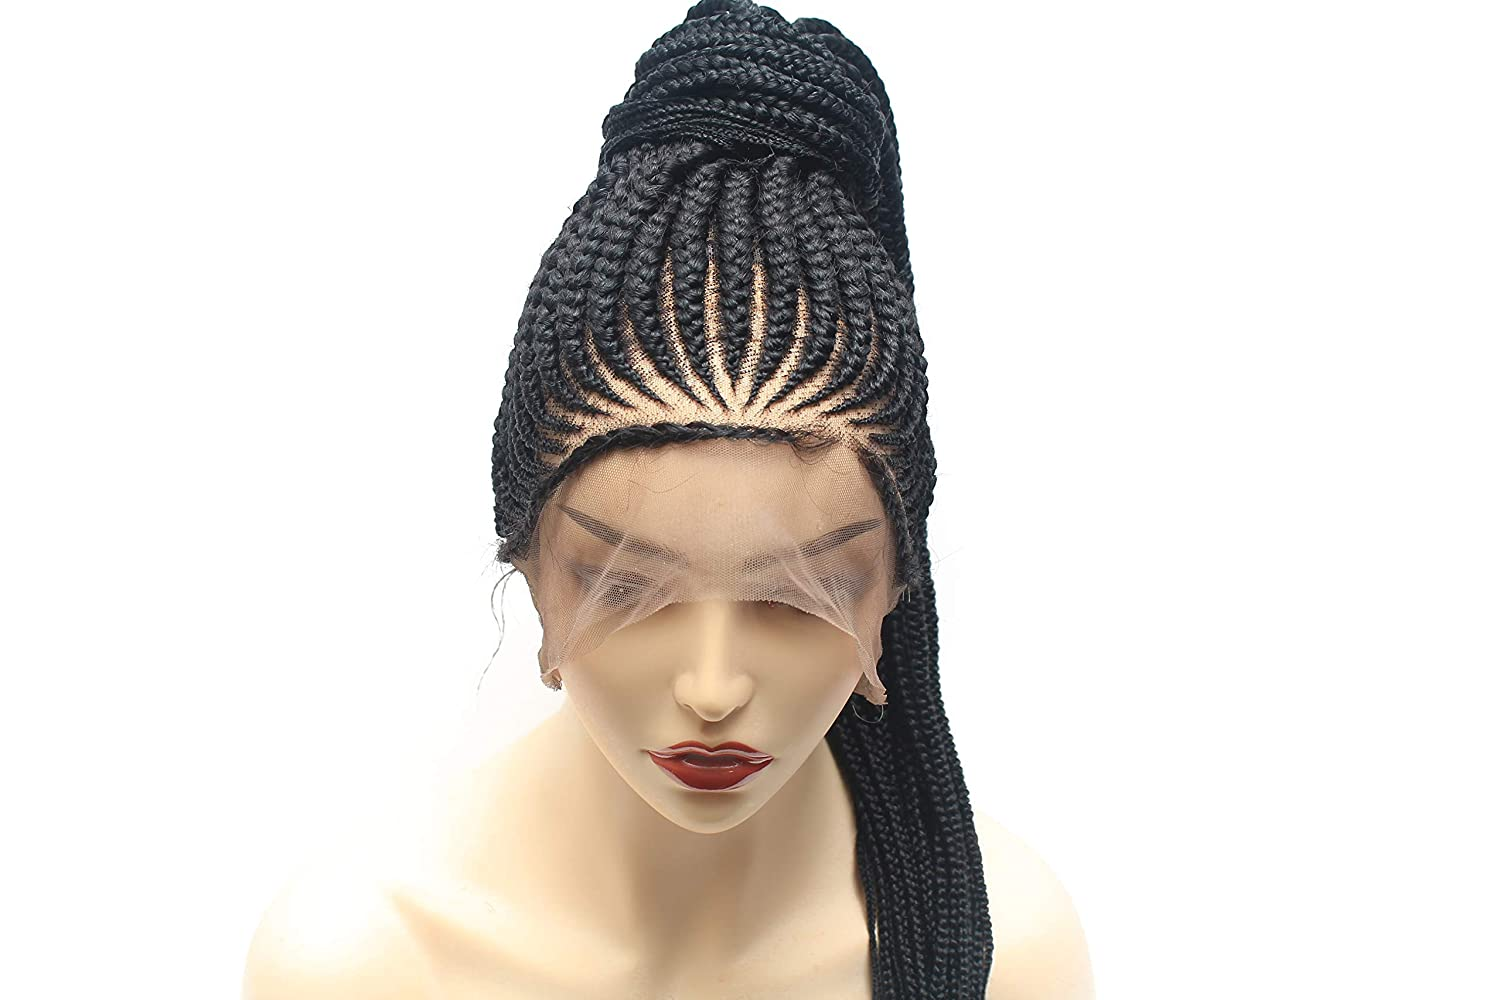 Braided Max 80% OFF full lace wig Cornrow weave braided Save money w hand fully